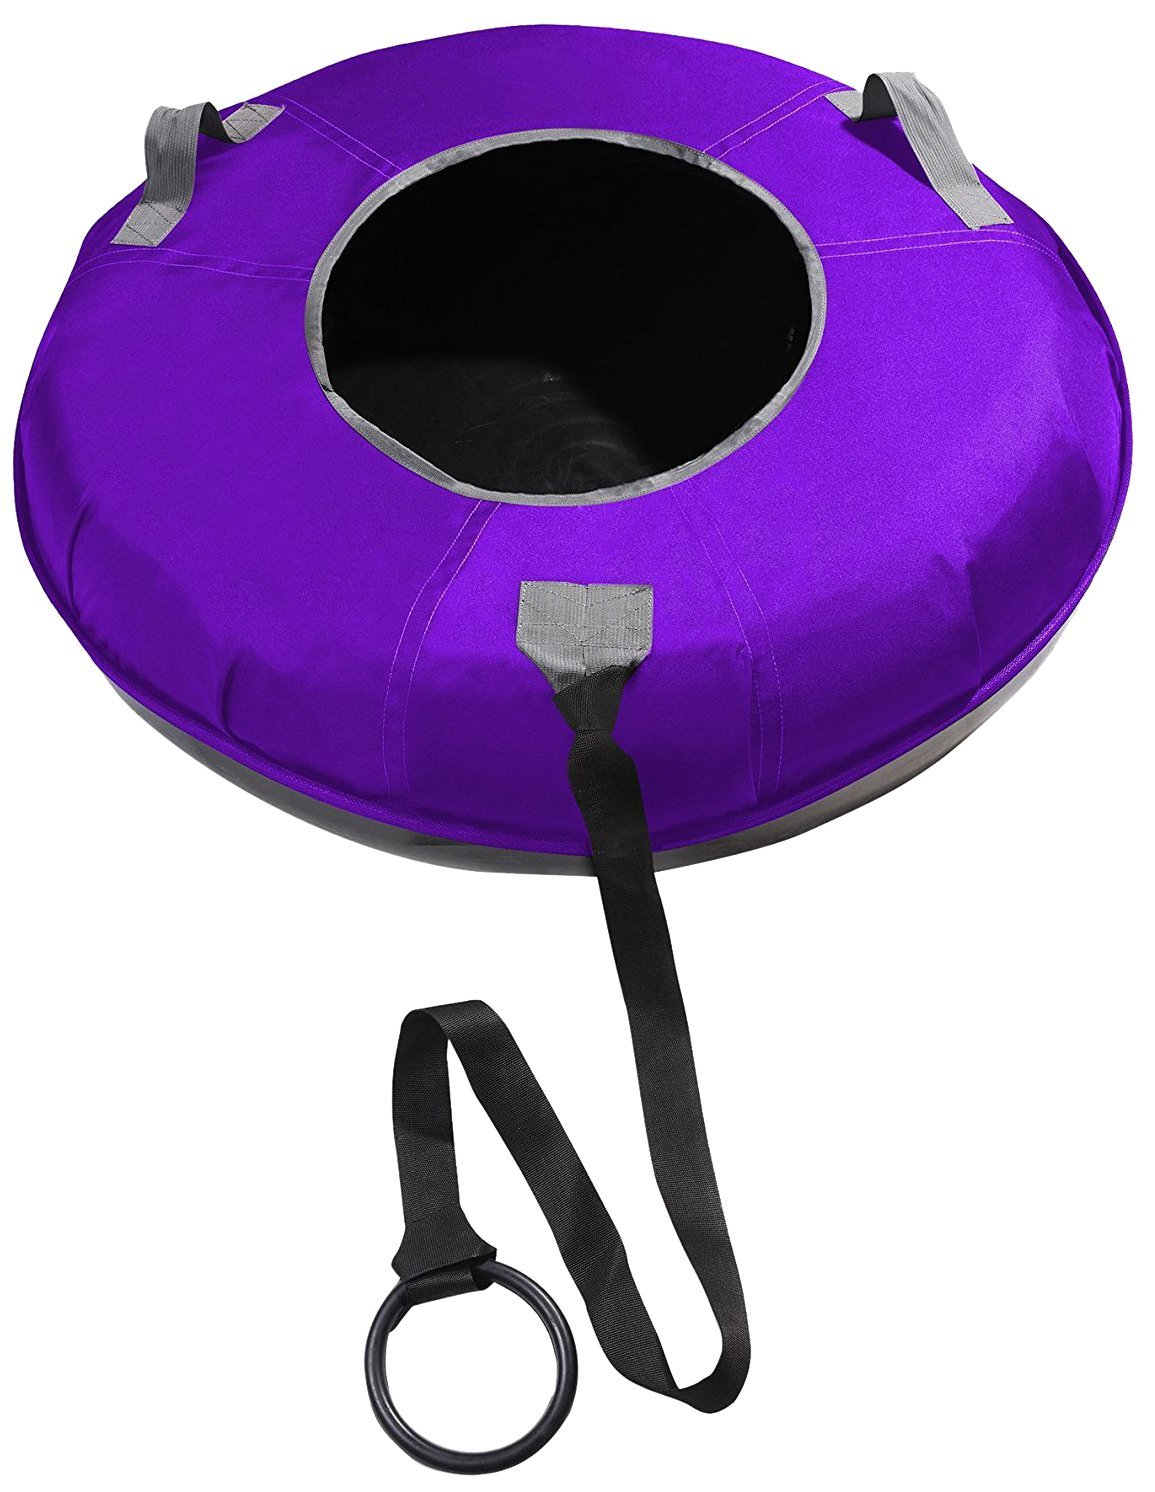 Big Tire Inflatable Snow Tube Sled by Toysland by